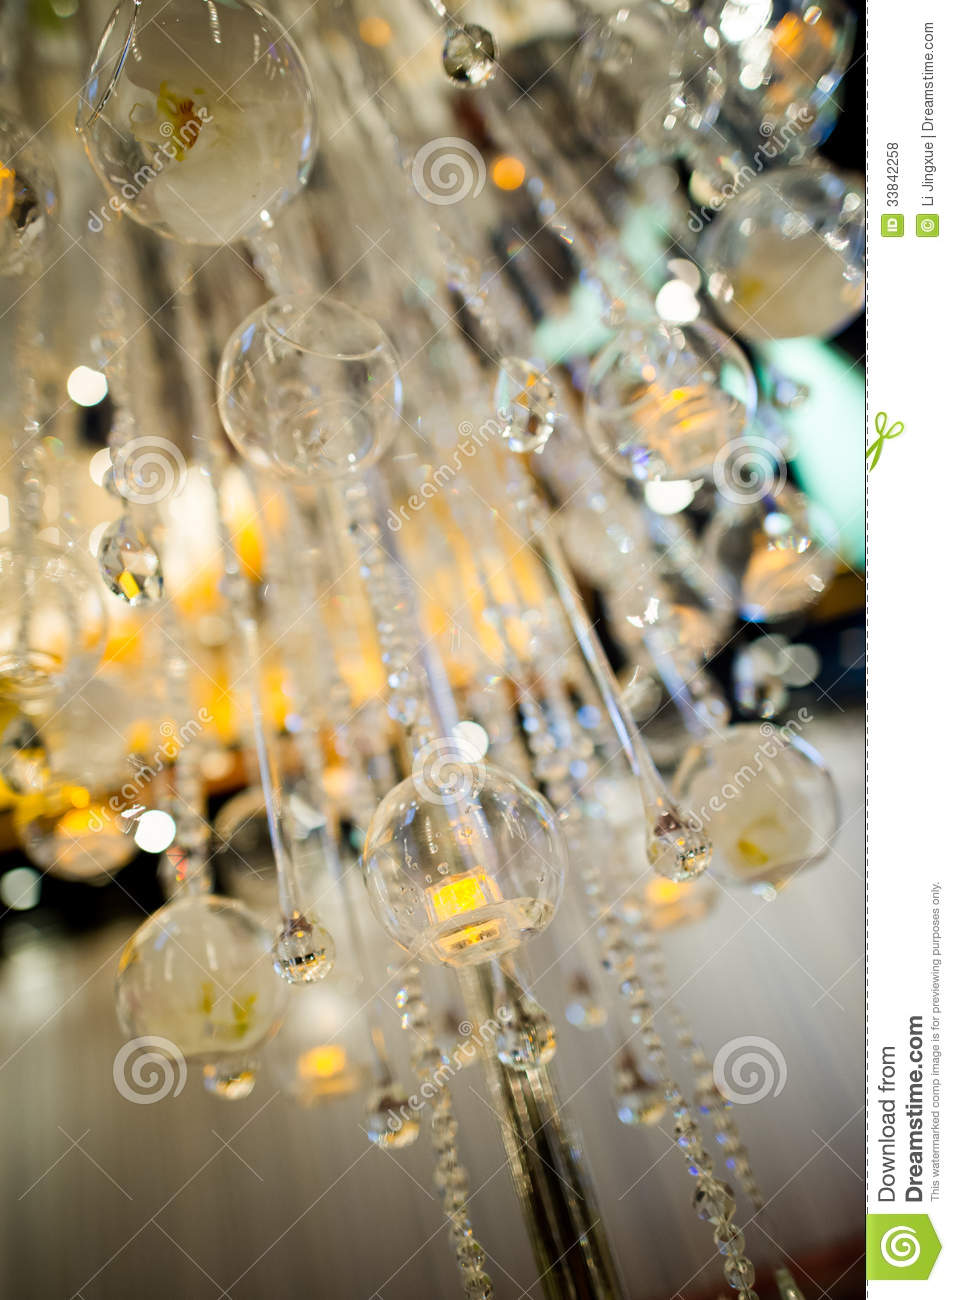 Wedding decorations stock photo image of background for Decoration 4 wedding